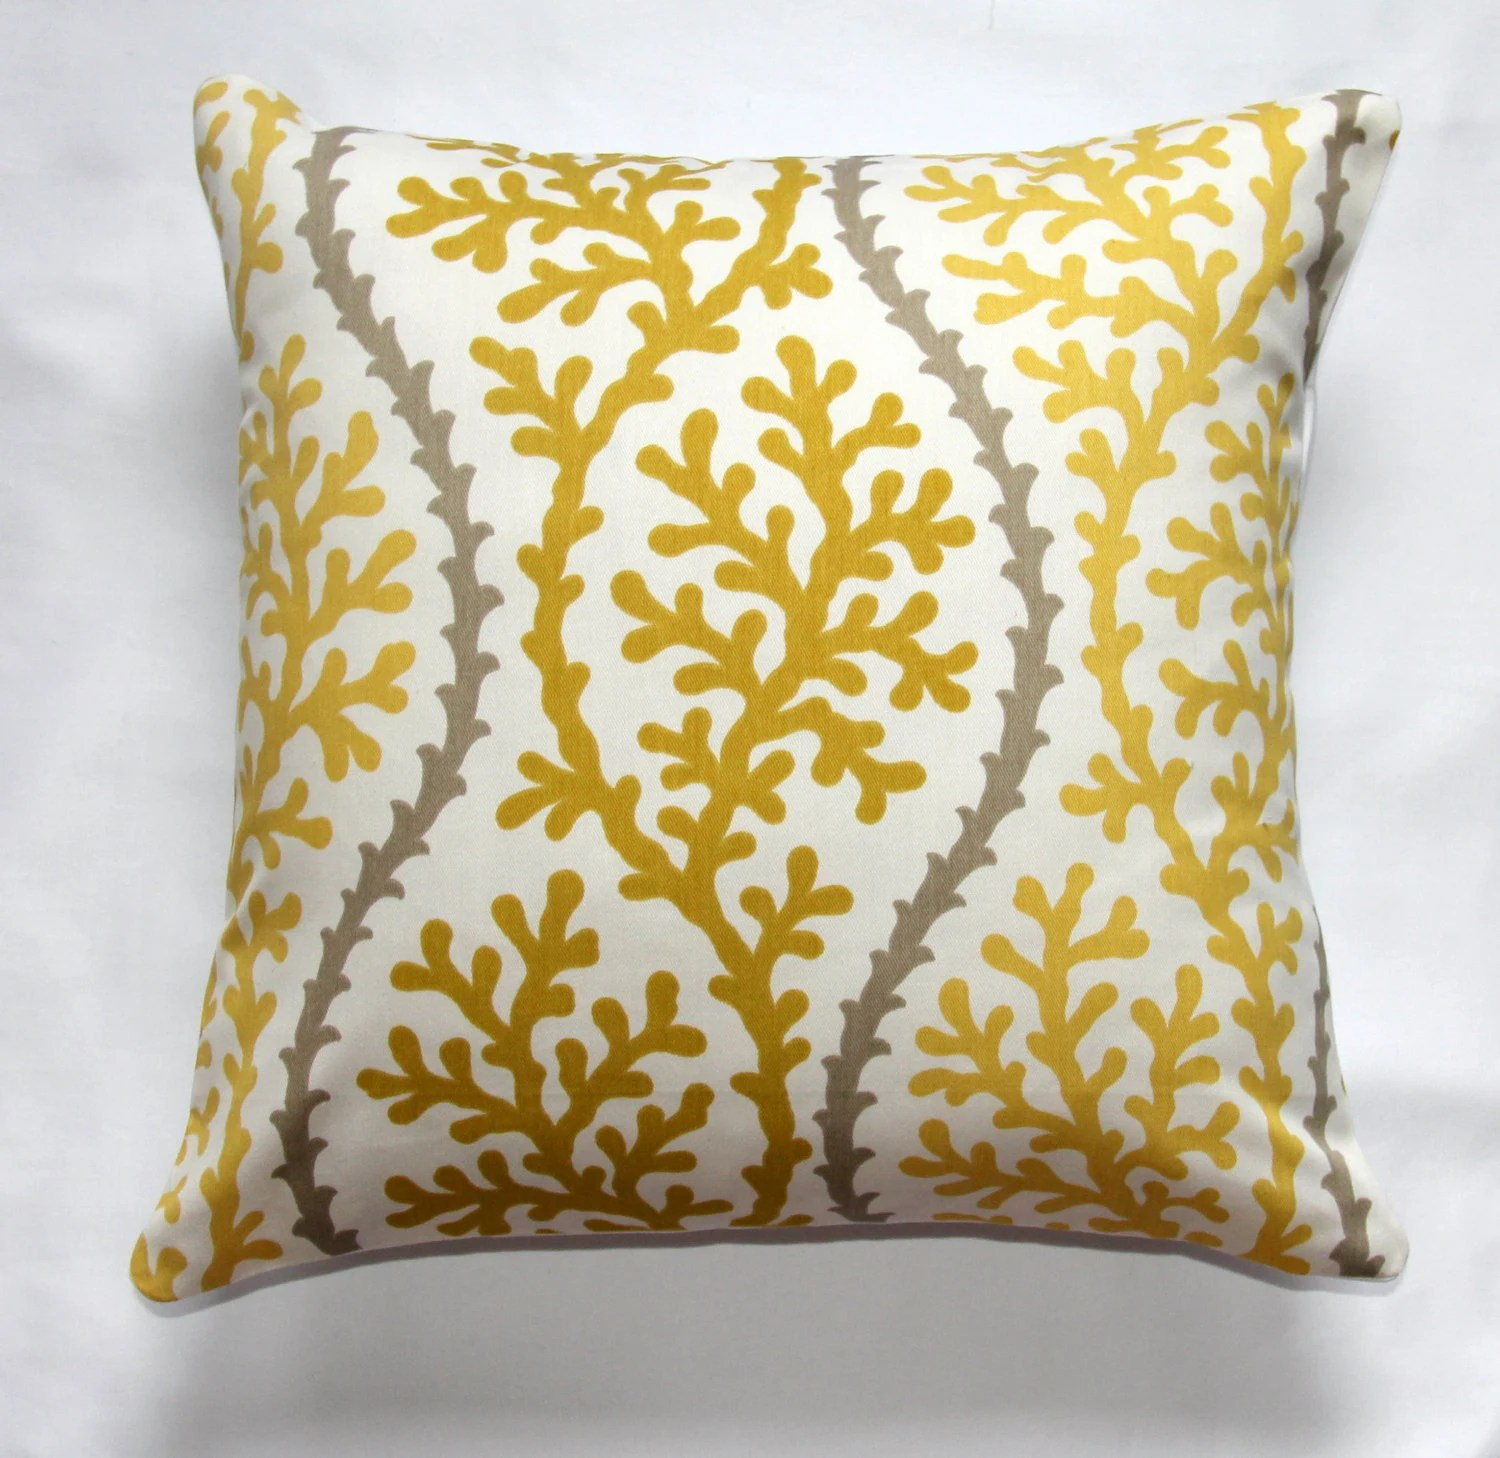 designer sofa pillows cleaning whitefield bangalore decorative pillow accent throw